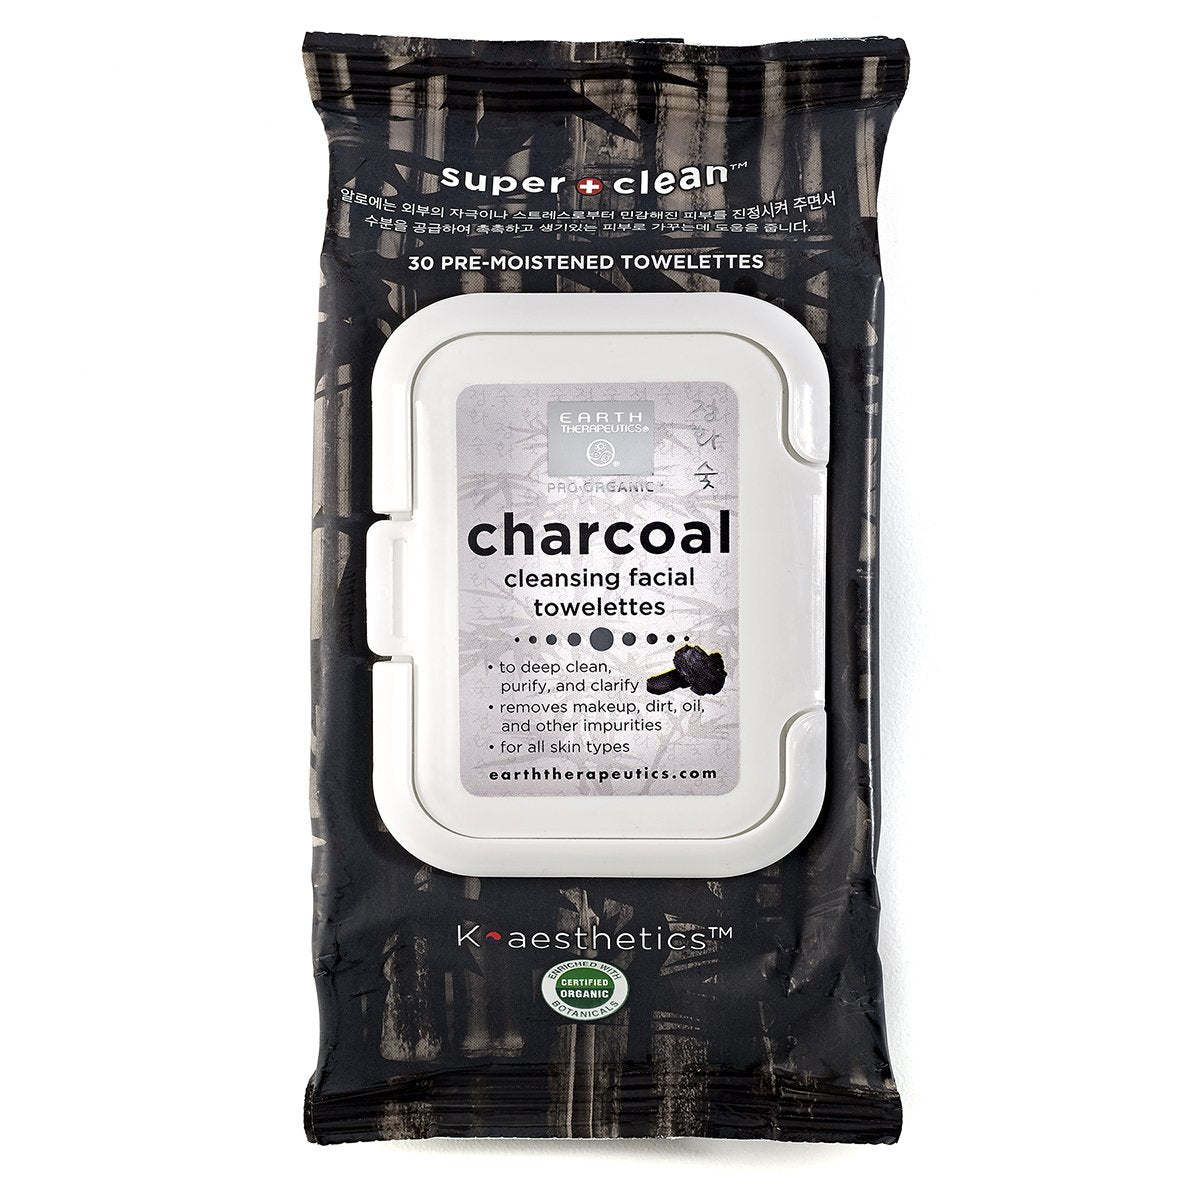 Charcoal Cleansing Facial Towelettes